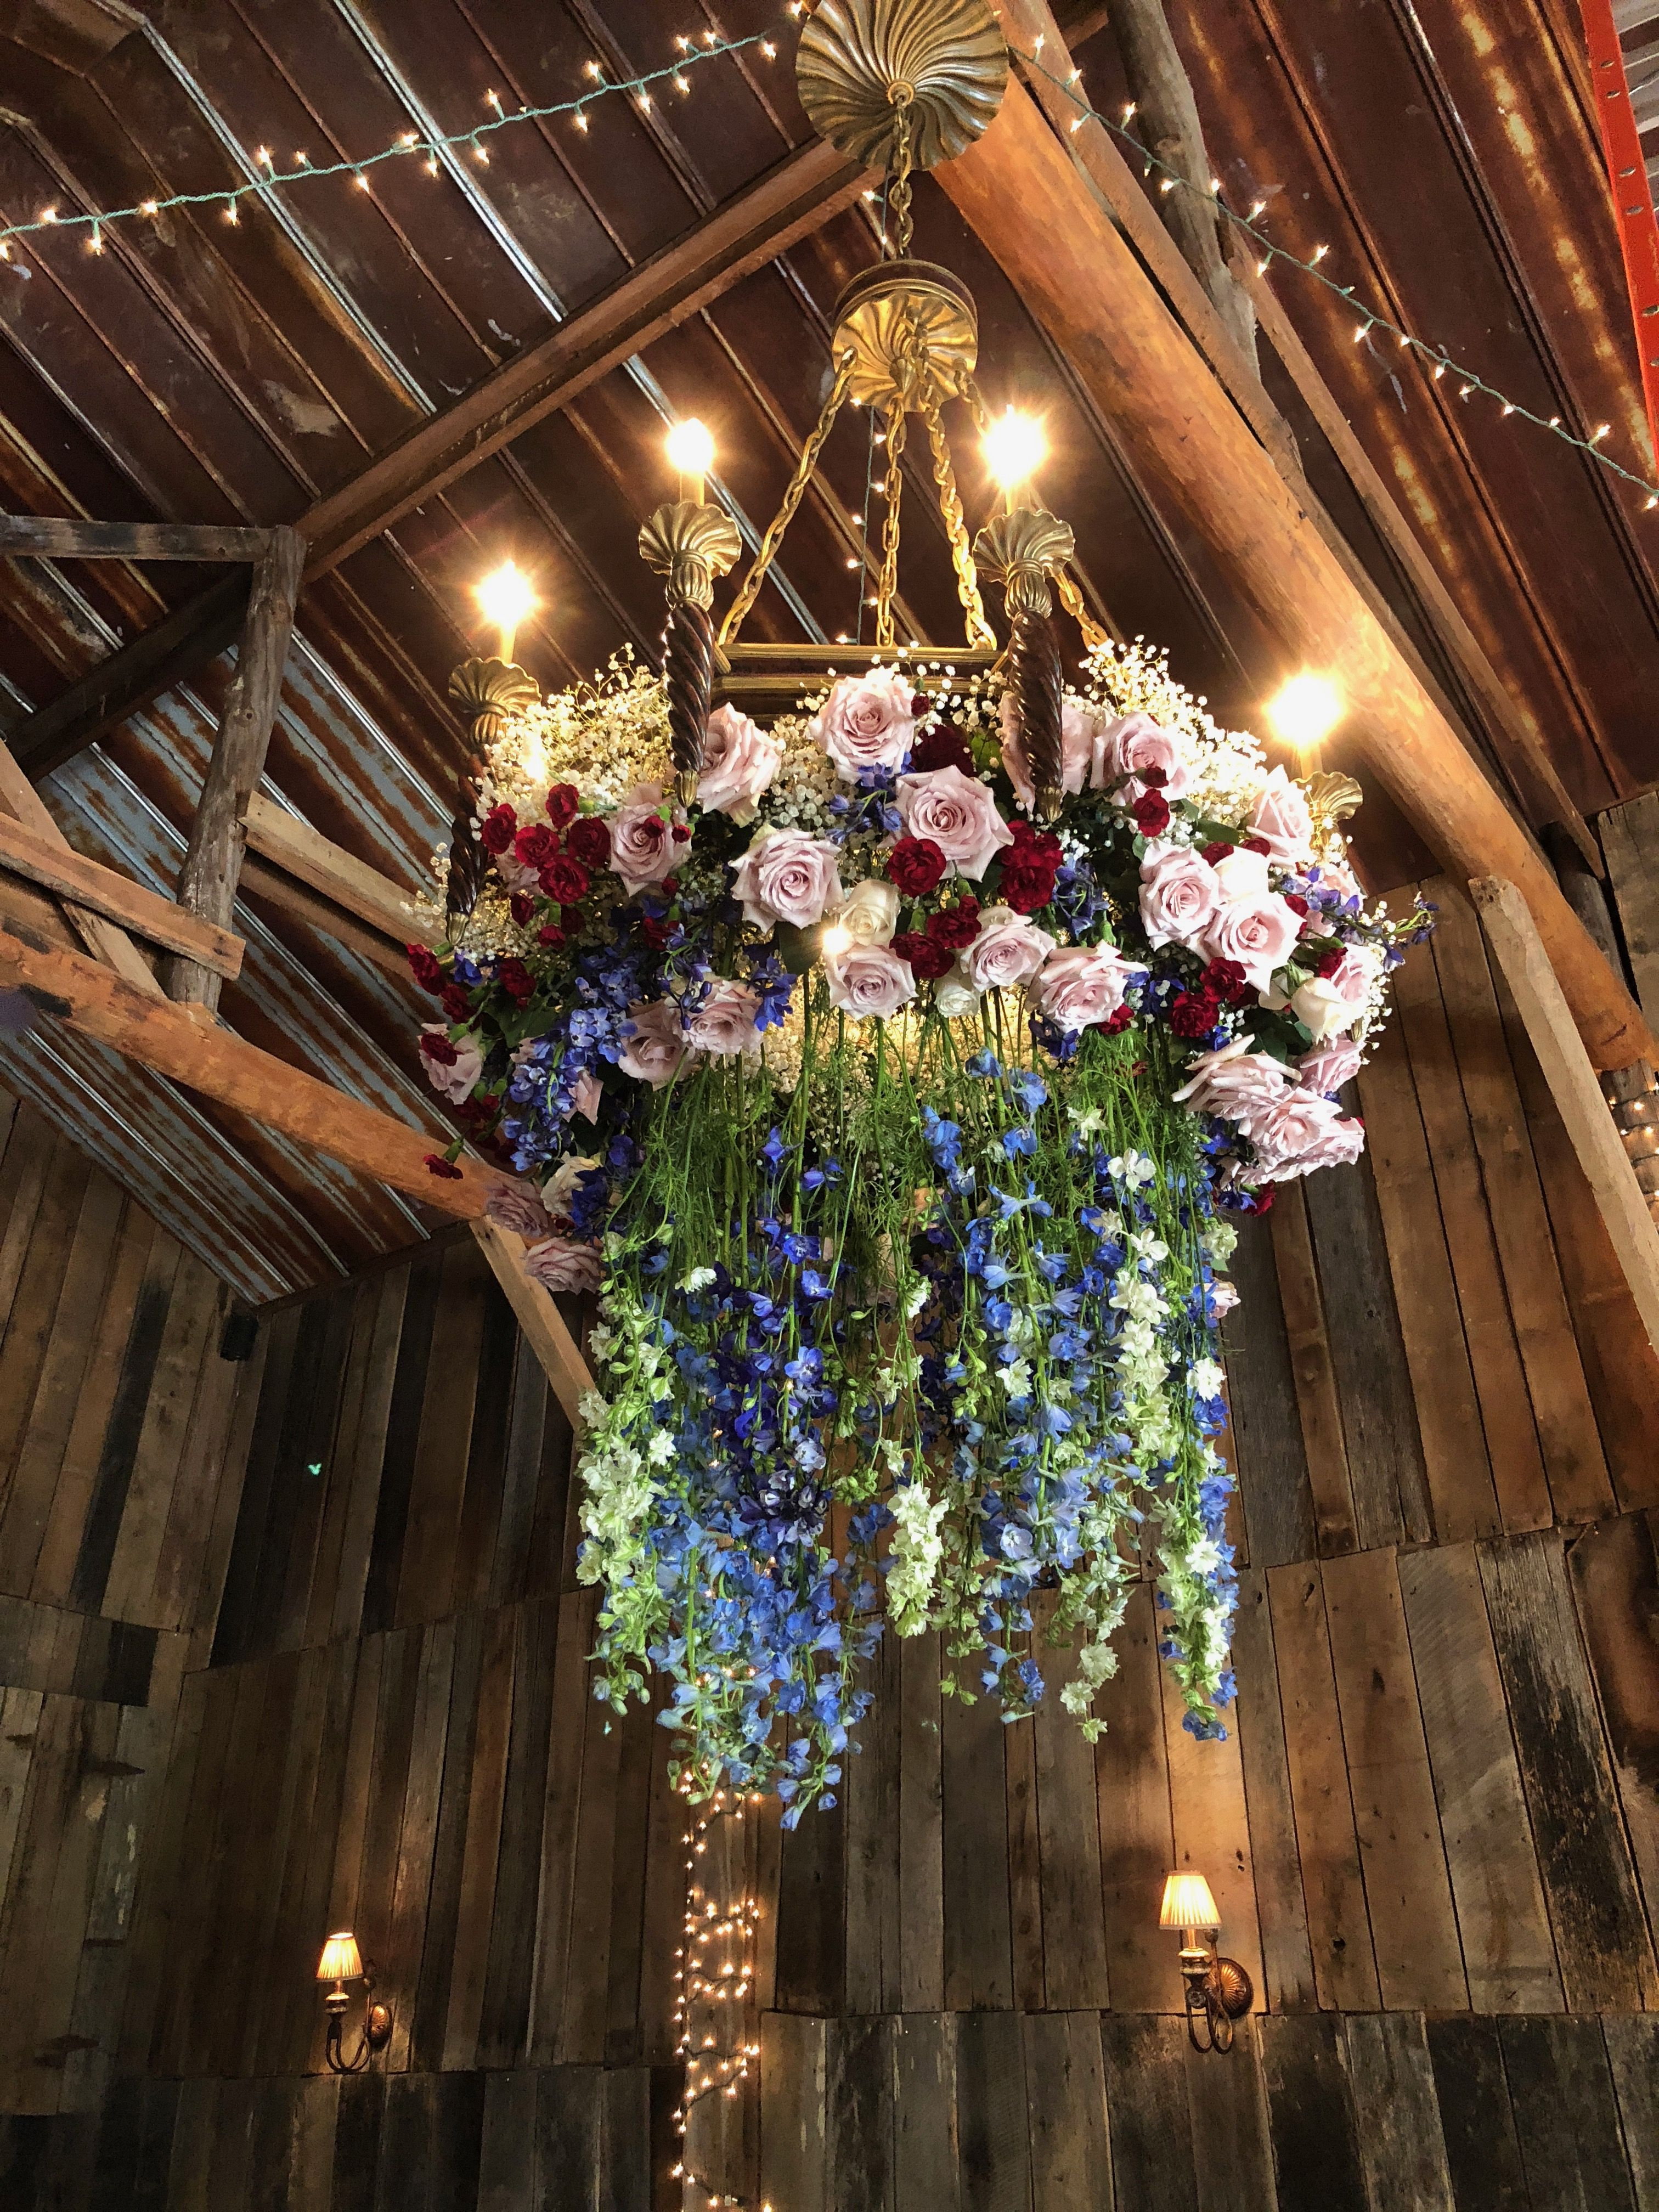 Rustic Barn Wedding Flower Chandelier Hanging Flowers Flowers